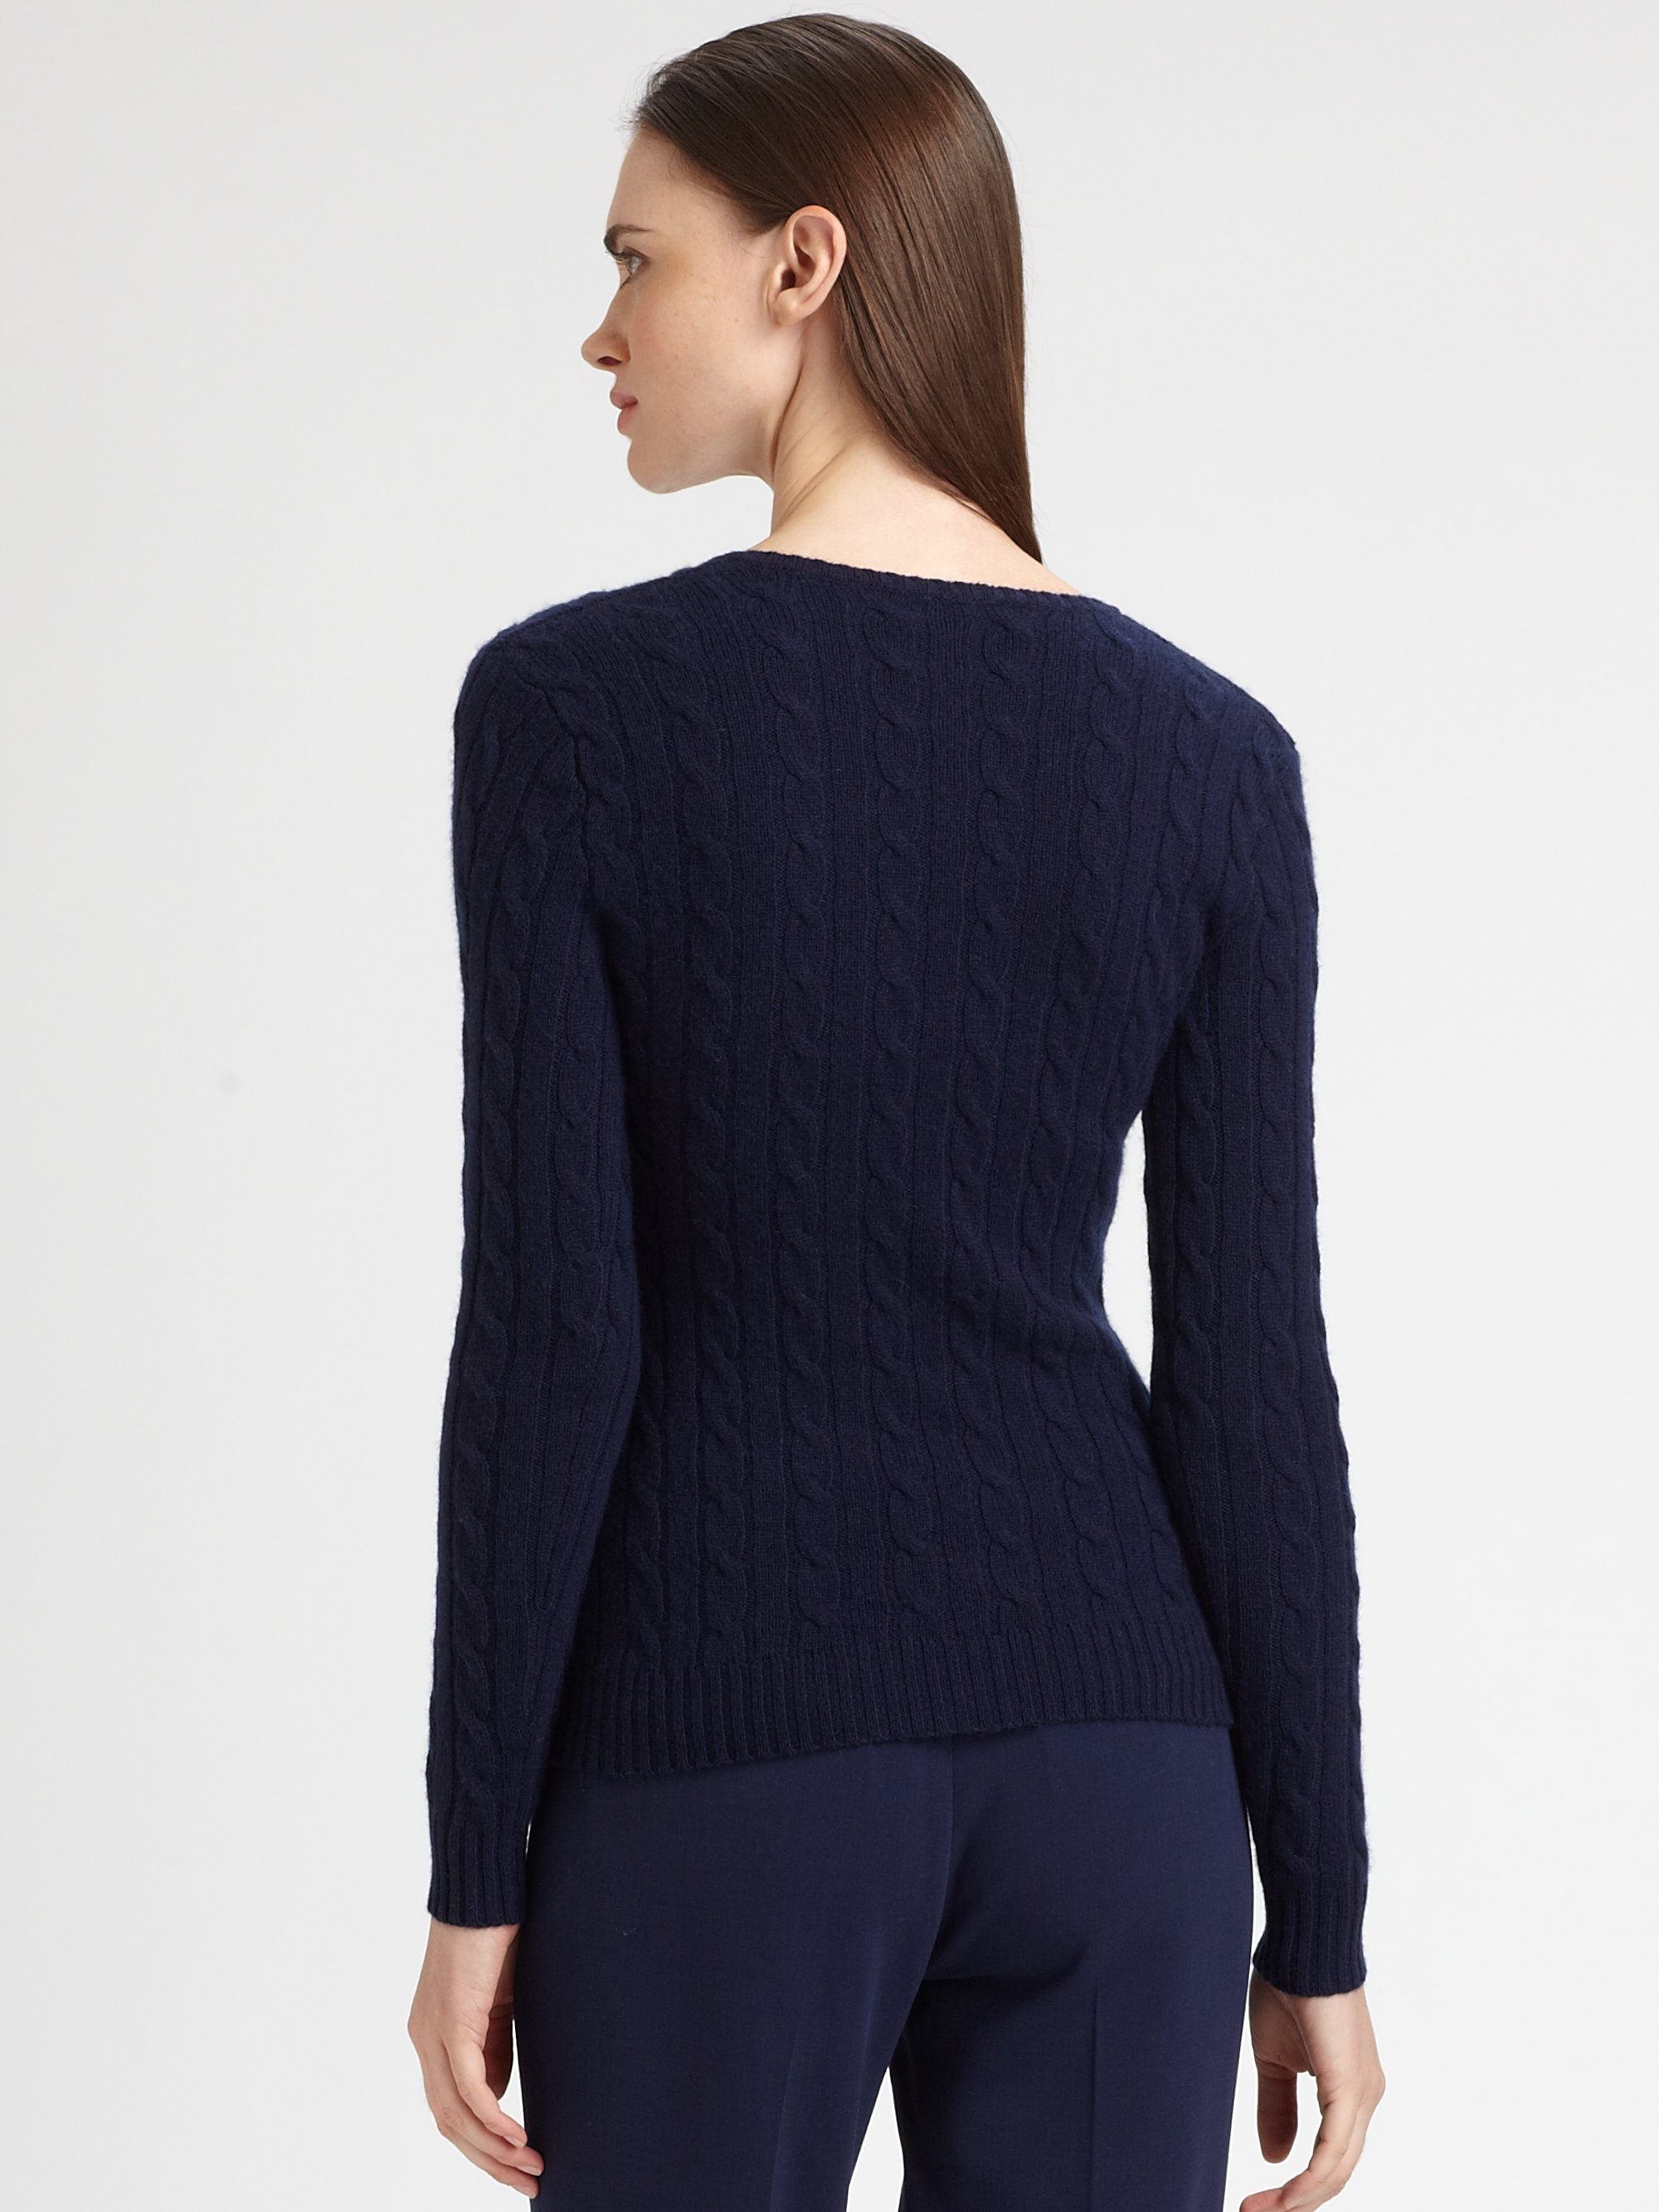 Ralph lauren black label Cashmere Cableknit Vneck Sweater in Blue ...